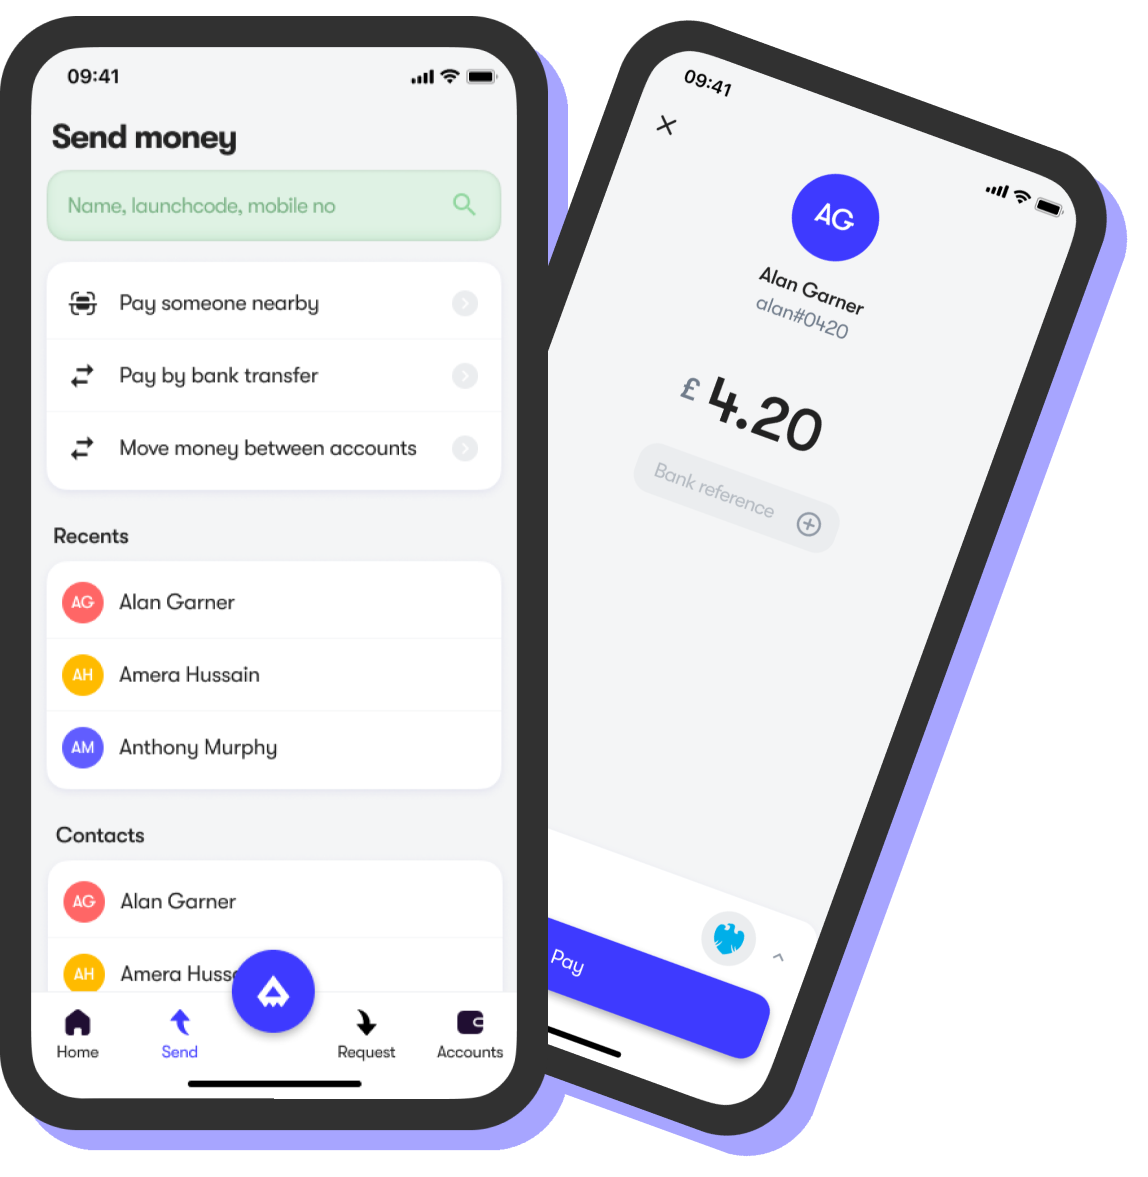 Screens for sending payments